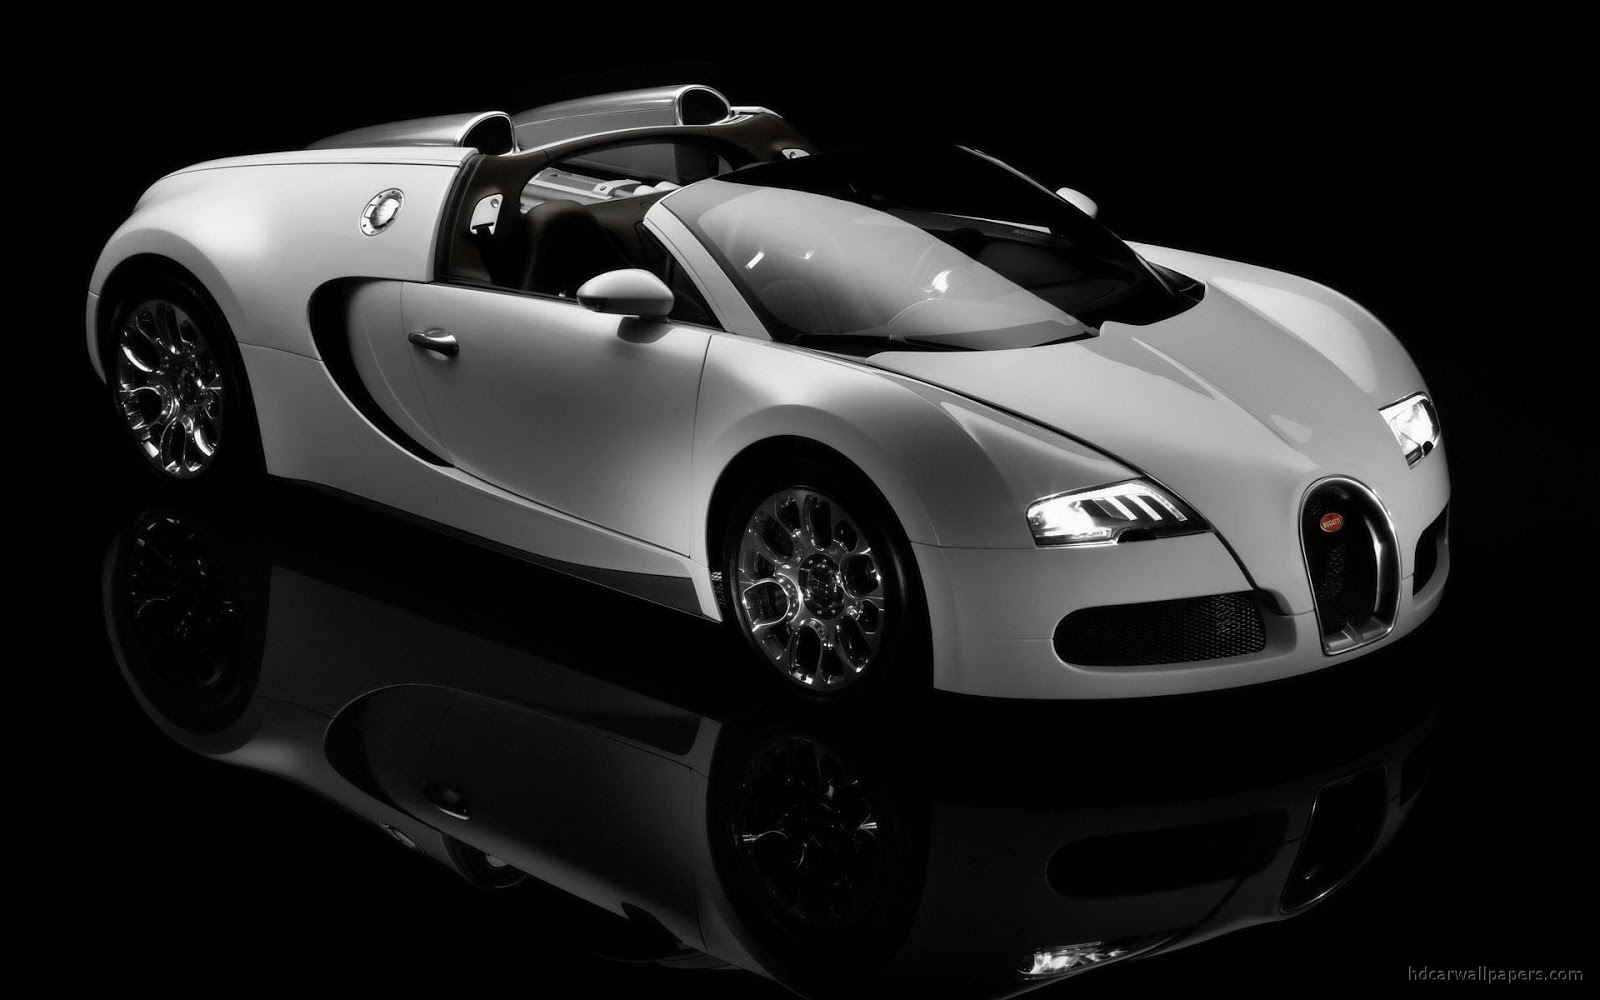 hd wallpapers bugatti veyron hd wallpapers. Black Bedroom Furniture Sets. Home Design Ideas